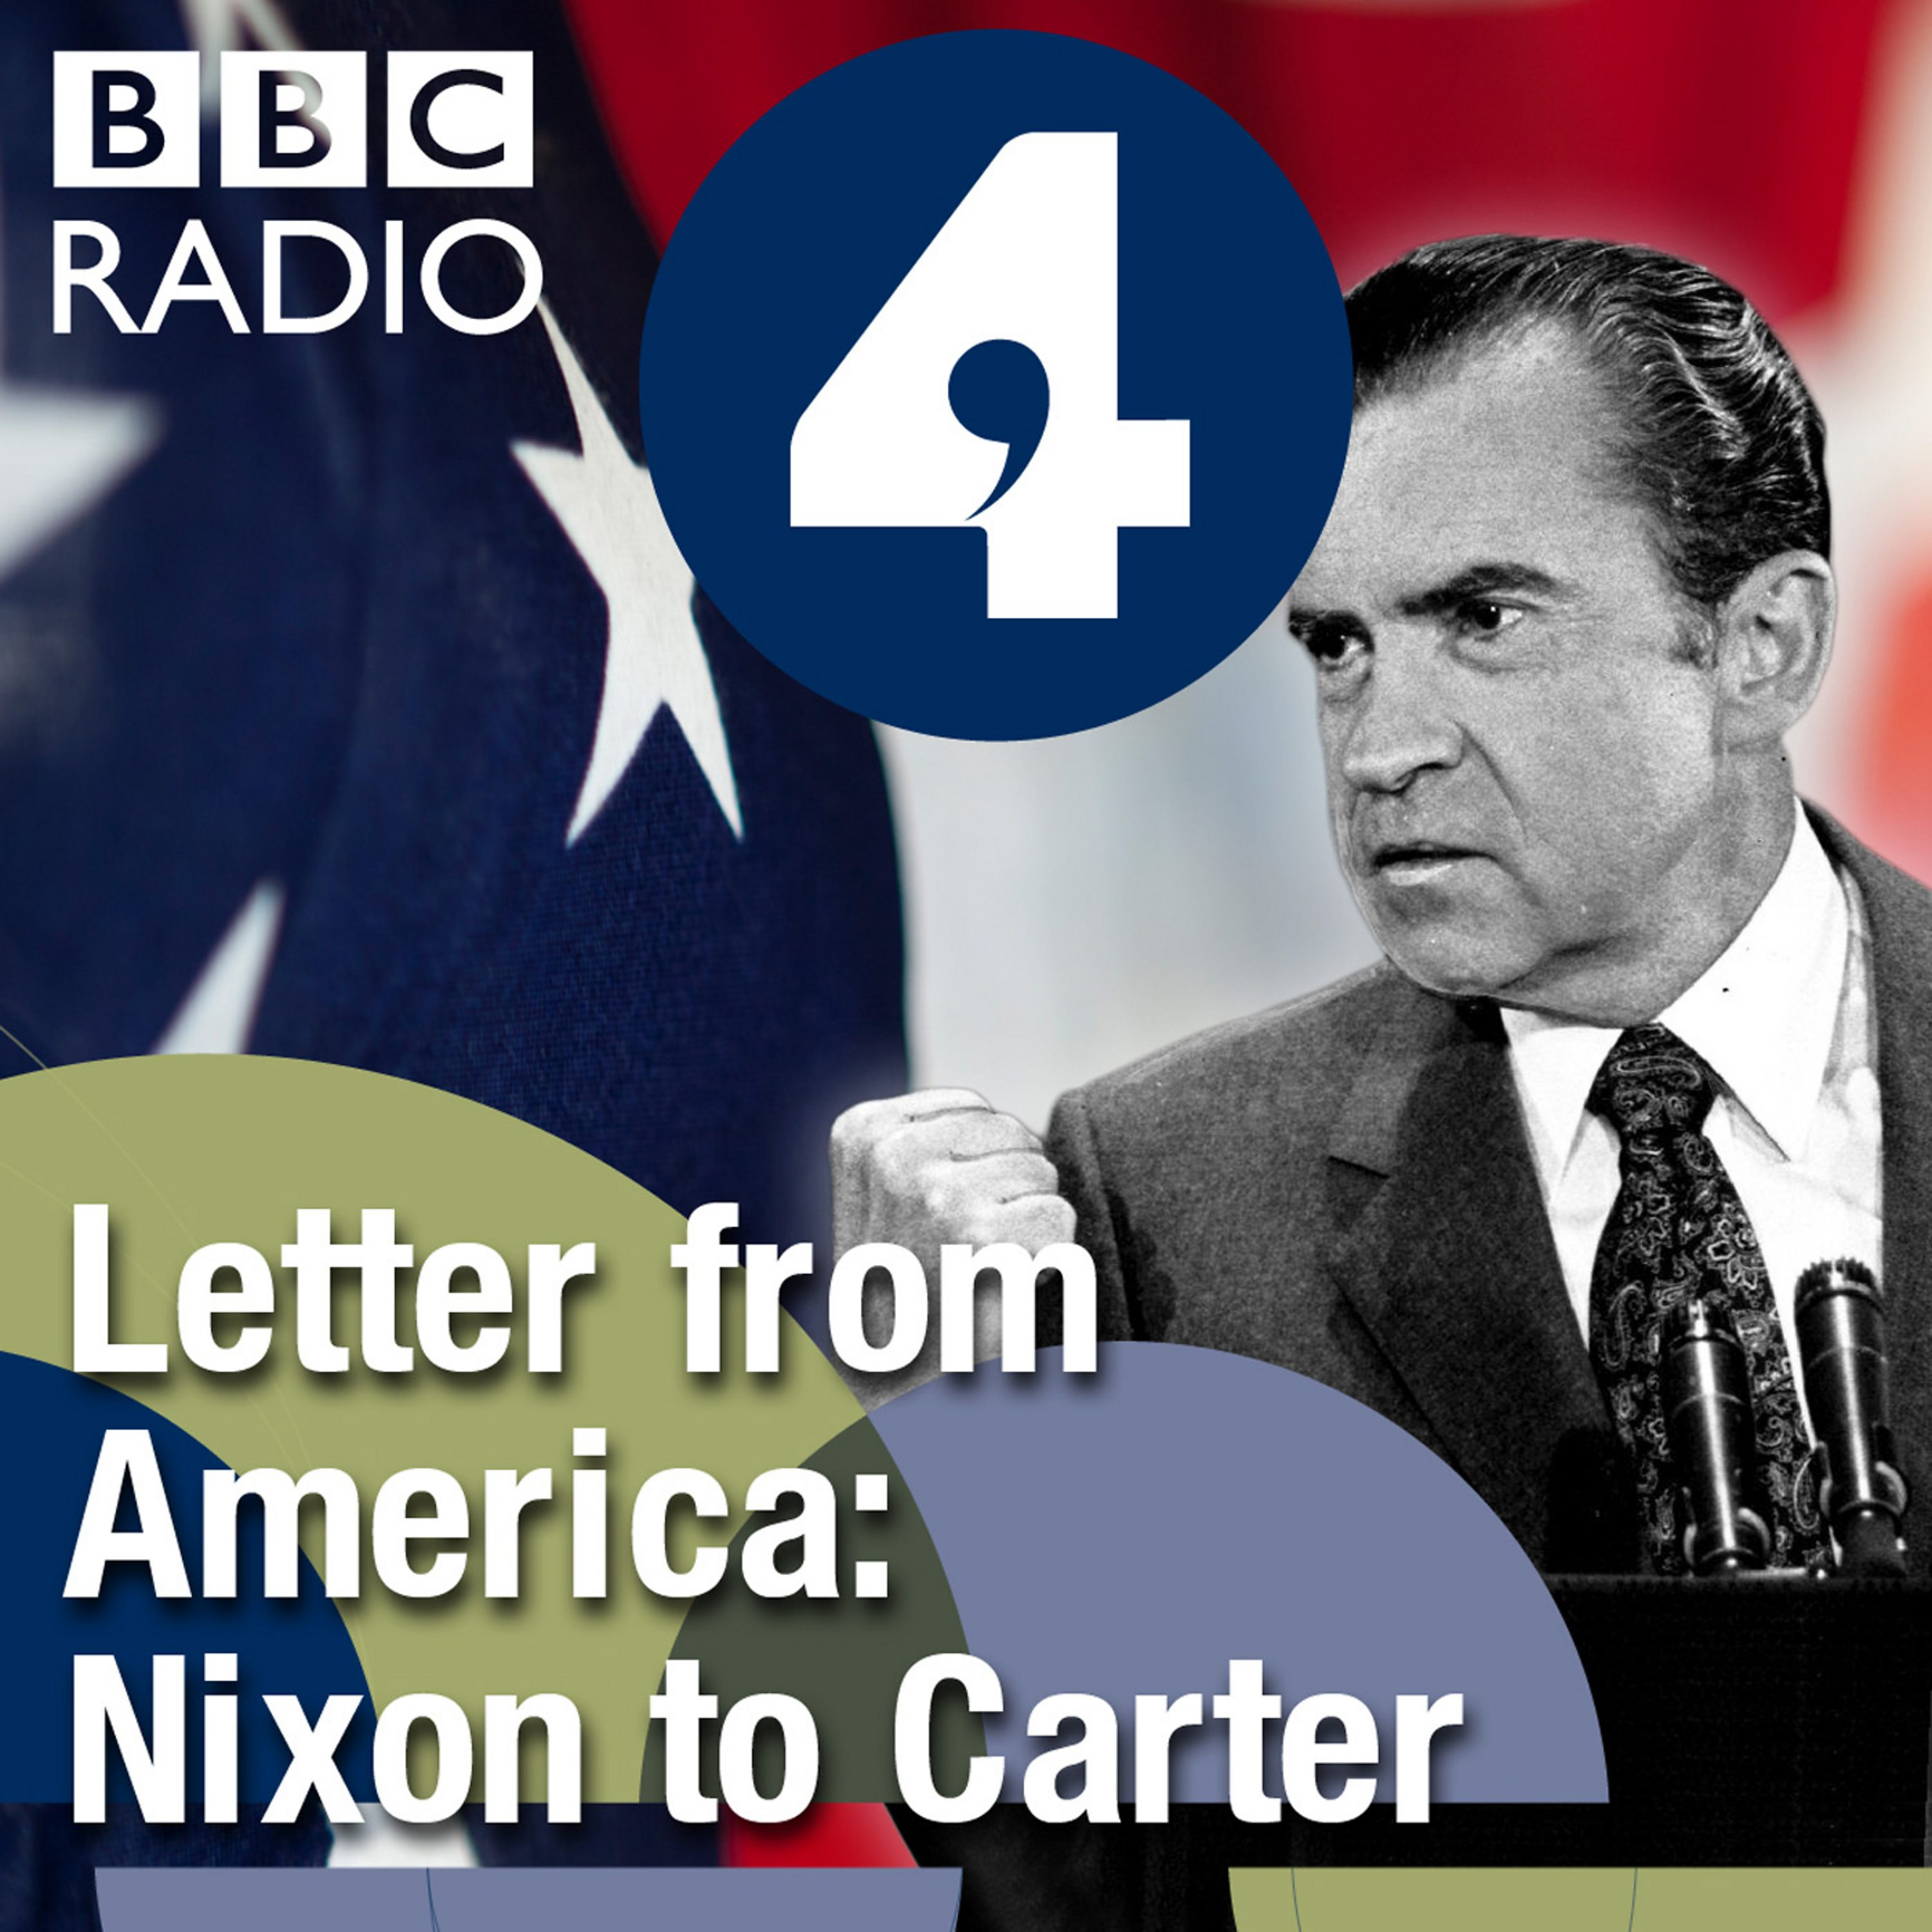 Episode 117 Watergate Unseating A President: Letter From America By Alistair Cooke: From Nixon To